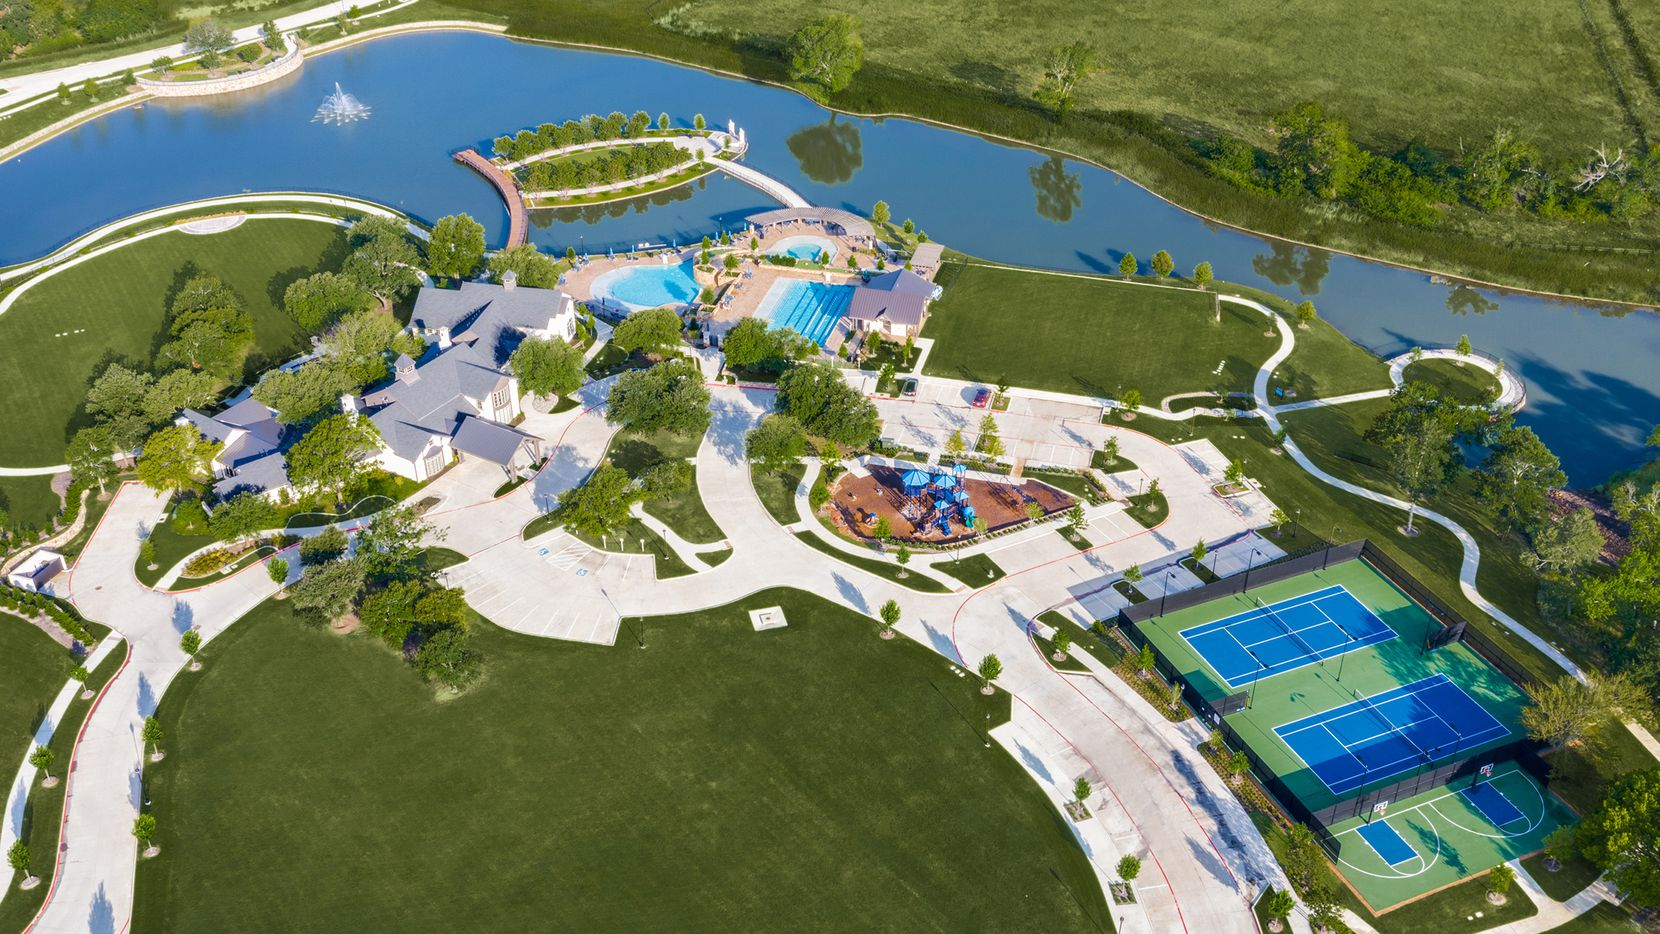 Mustang Lakes is an award-winning master-planned community that offers a variety of design plans and numerous amenities.